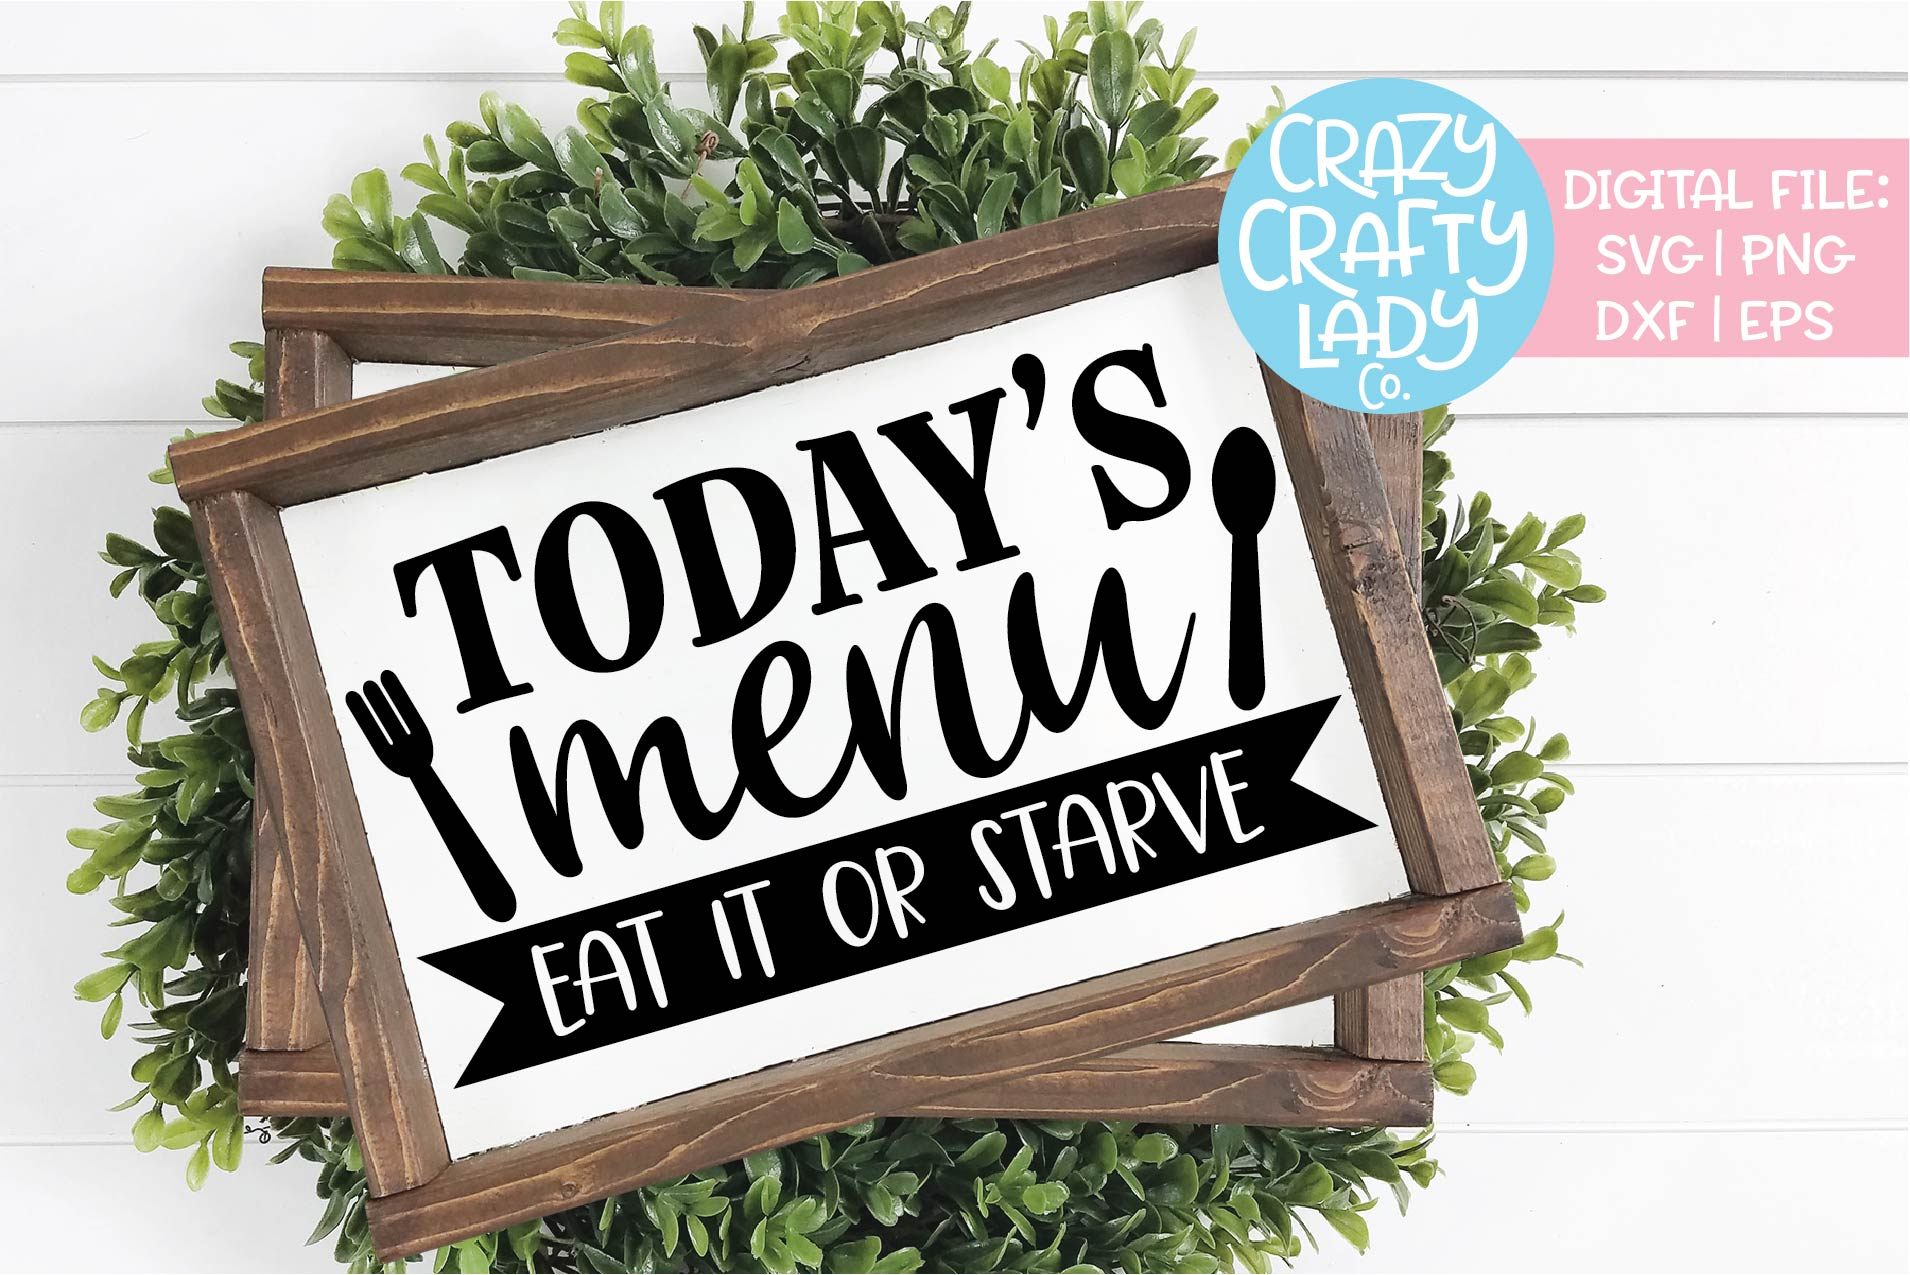 Today's Menu Eat It or Starve SVG DXF EPS PNG Cut File example image 1